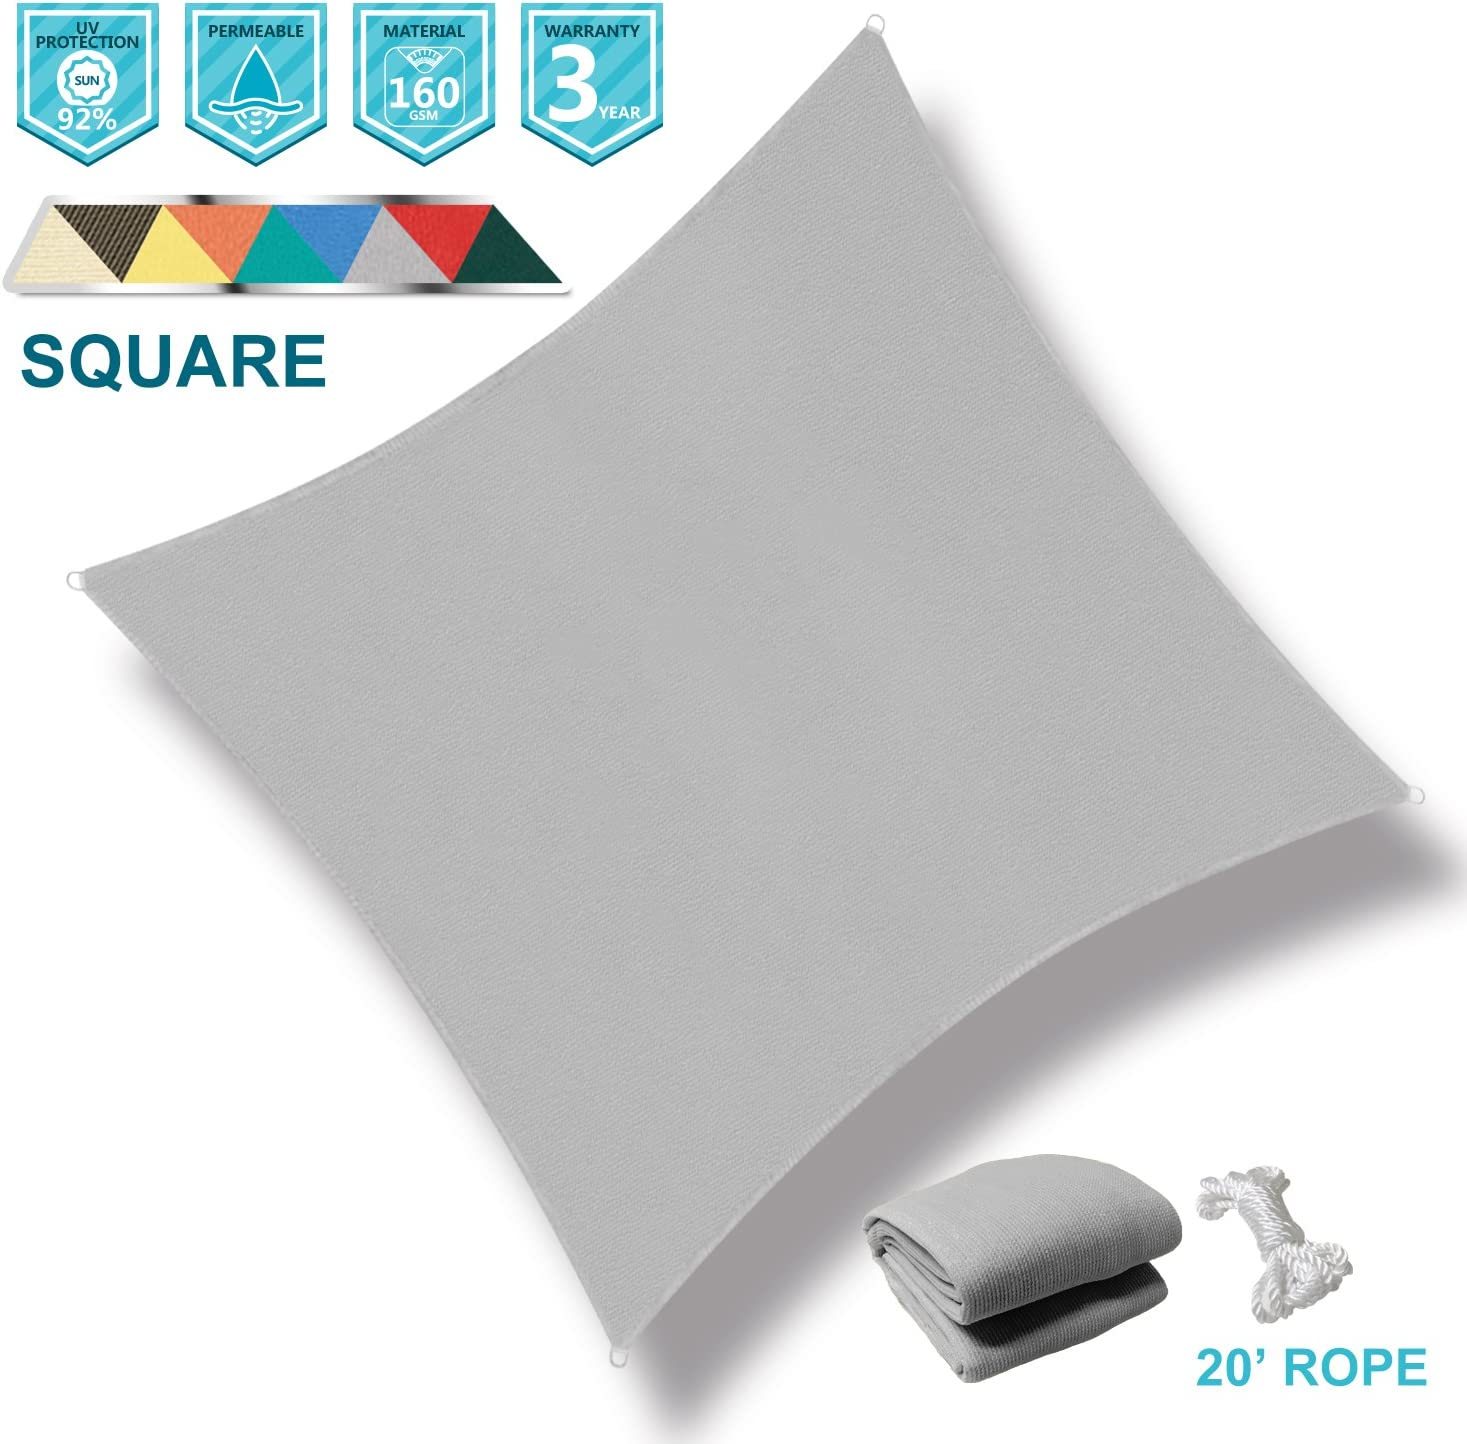 Coarbor 10 x10 Square Light Grey UV Block Sun Shade Sail Canopy Perfect for Patio Outdoor Garden